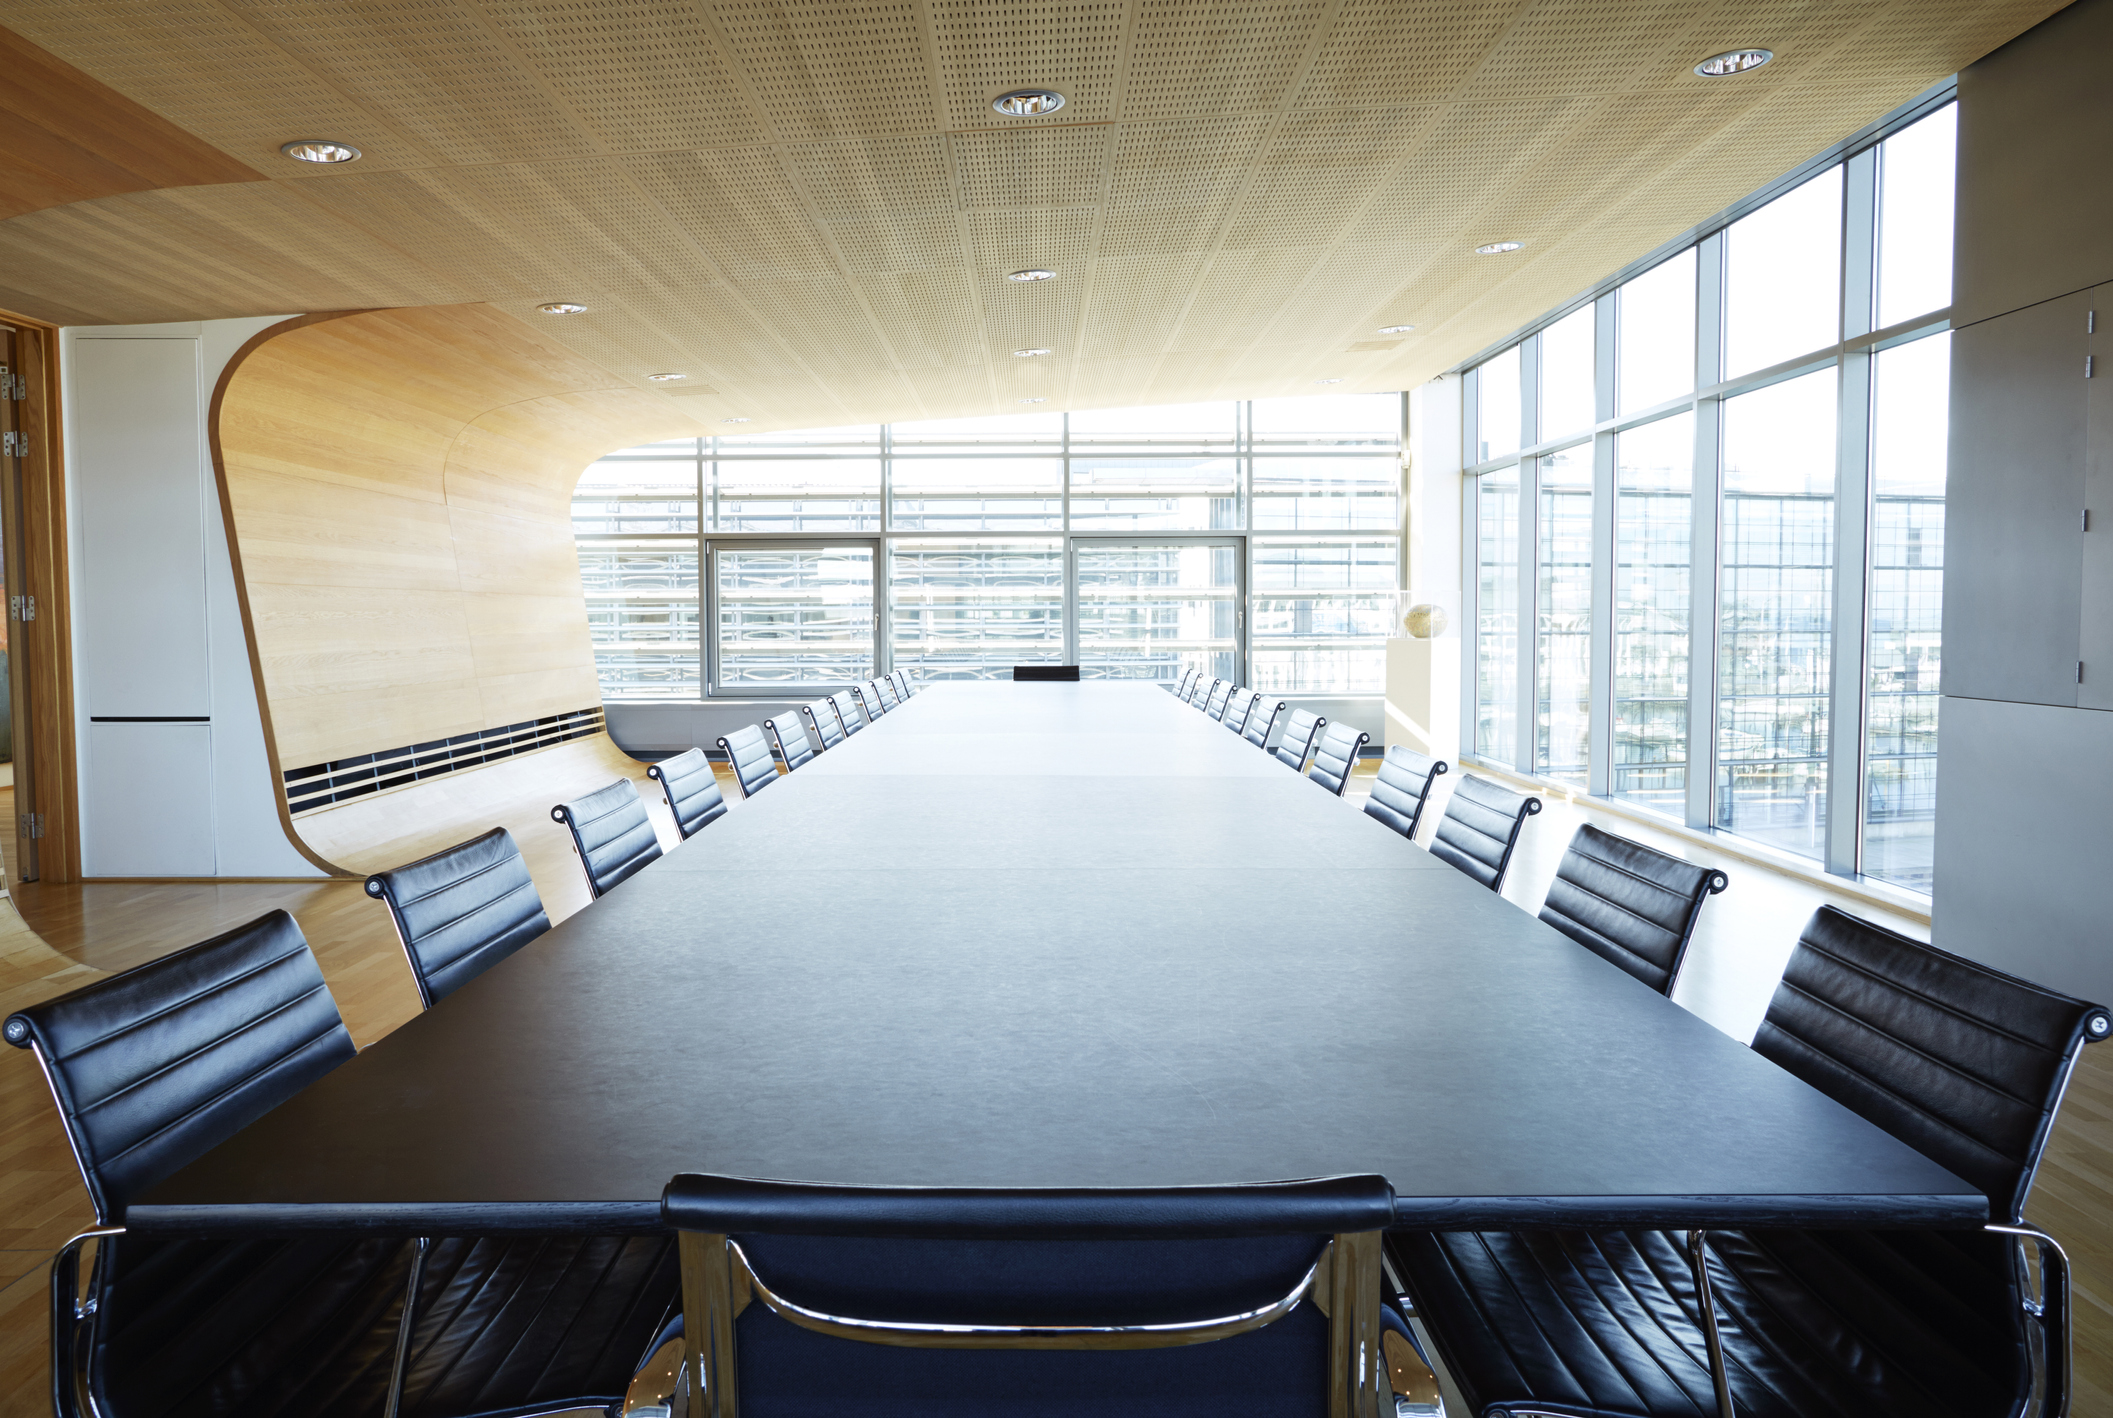 View over huge table in designed meeting room